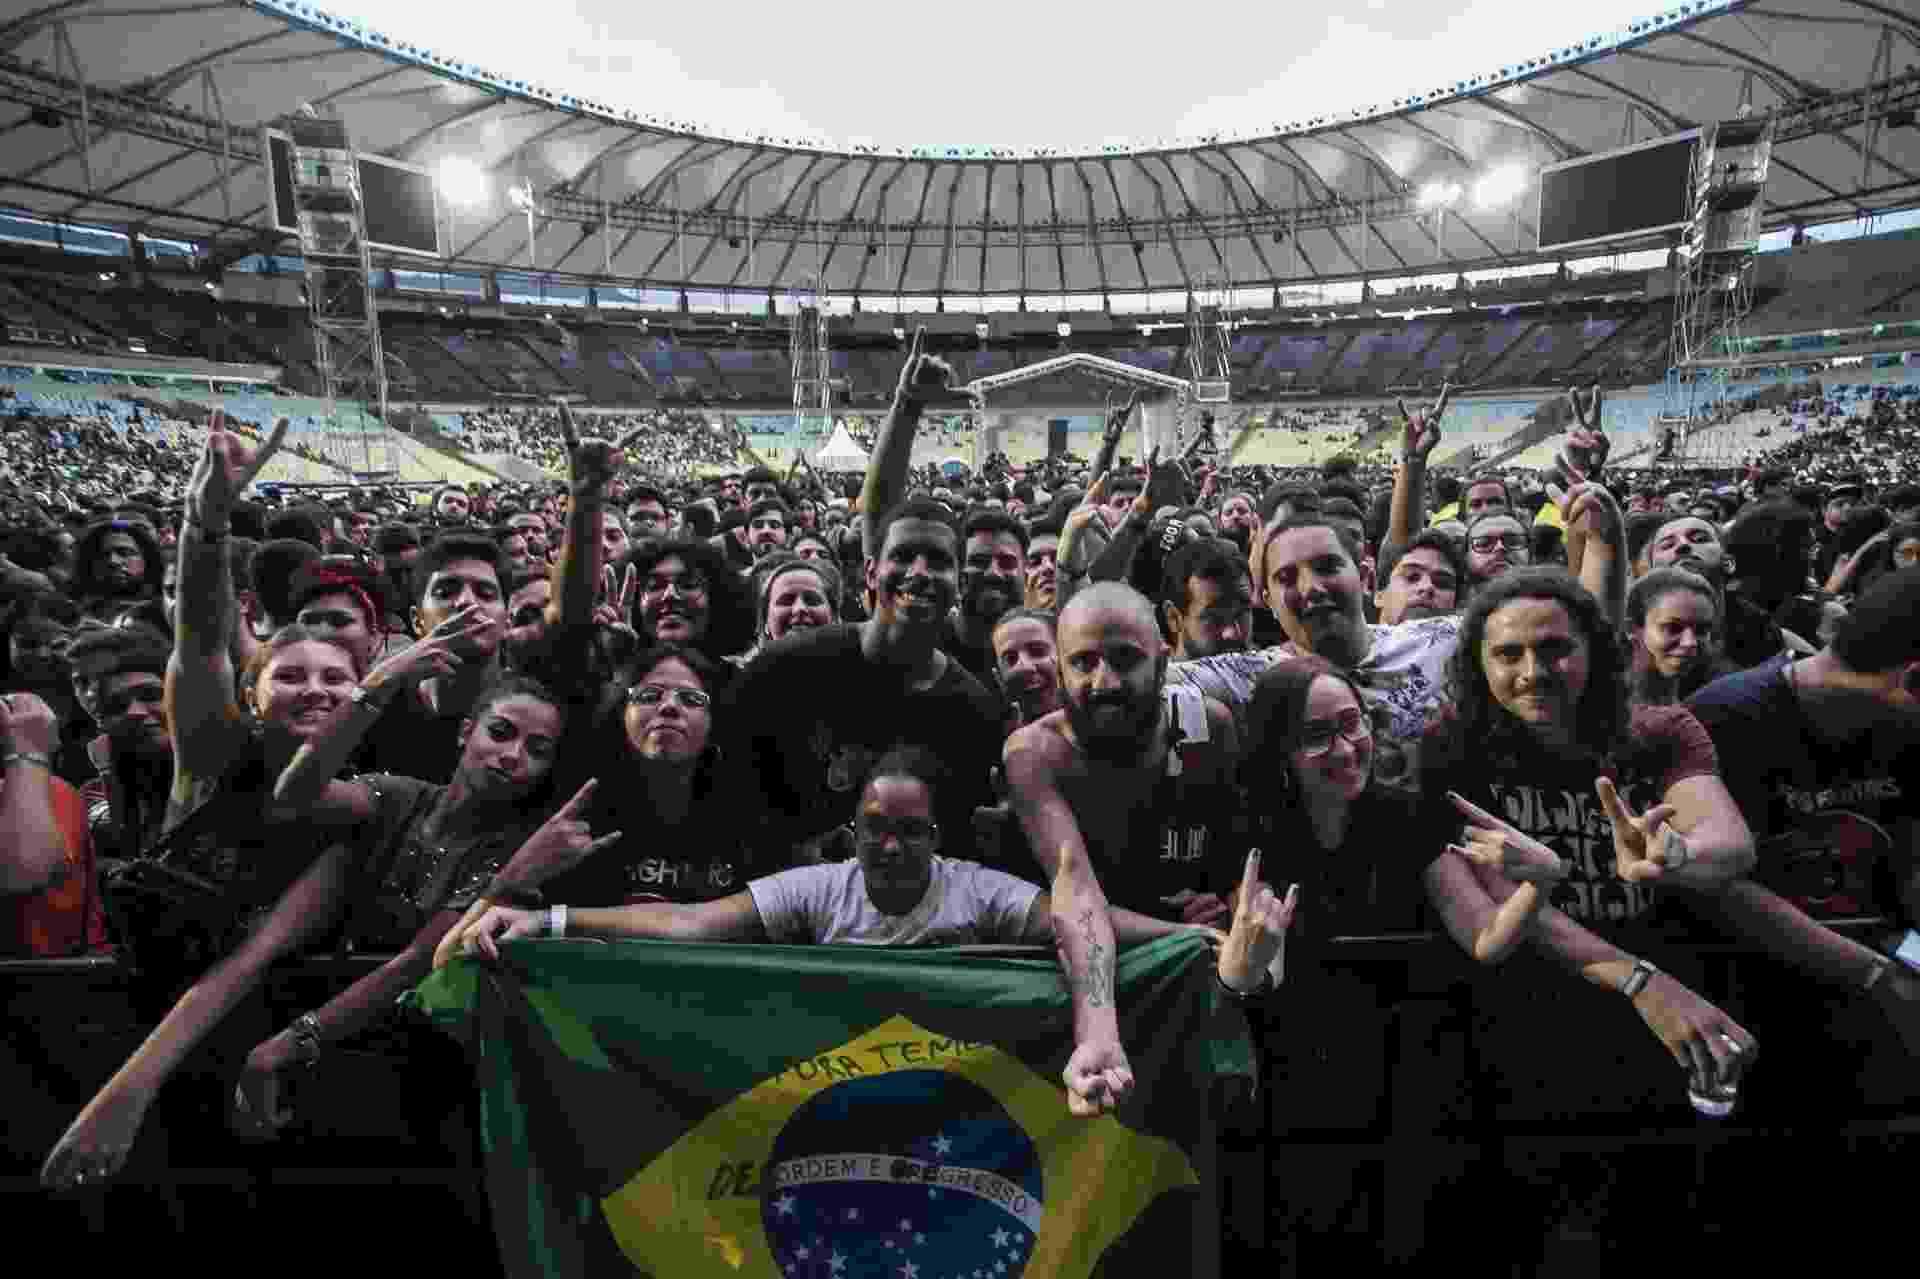 O domingo foi dia de rock no Maracanã, bebê! Apesar do tempo nublado, milhares de jovens lotaram o maior estádio de futebol do Rio neste domingo(25) para assistirem shows das bandas Foo Fighters e Queens of the Stone Age - Bruna Prado/UOL